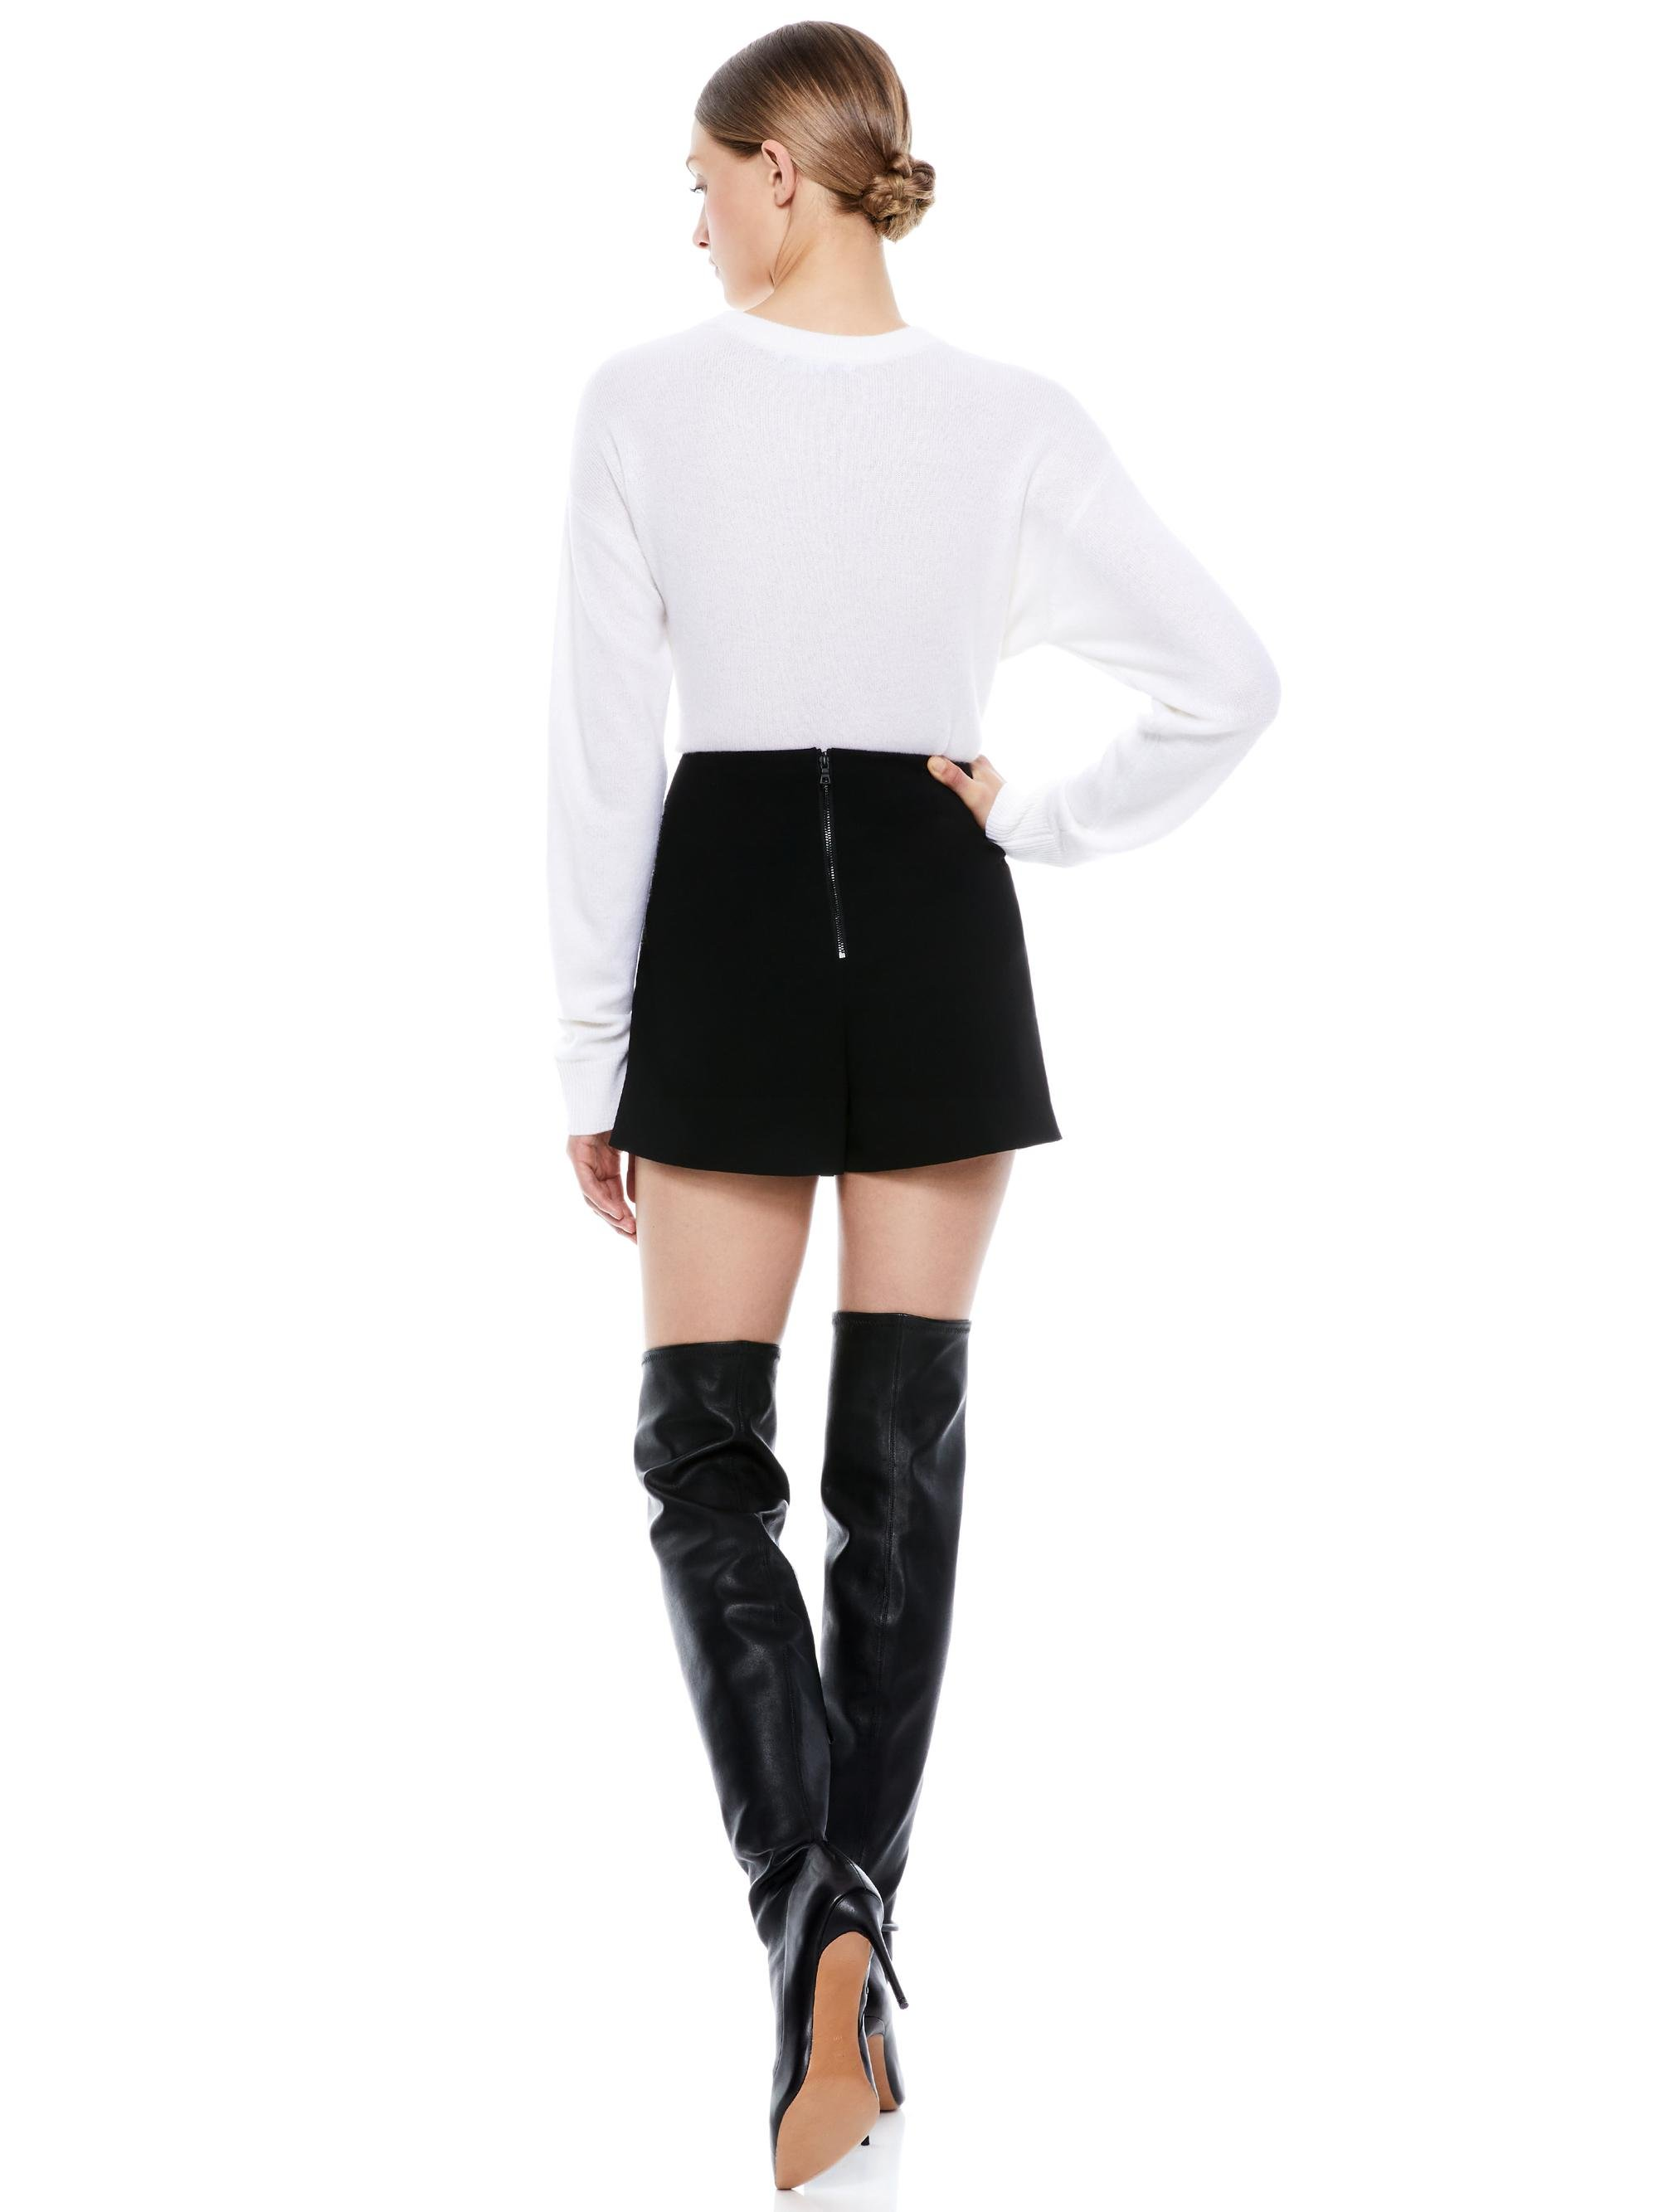 DARMA VEGAN LEATHER SKORT